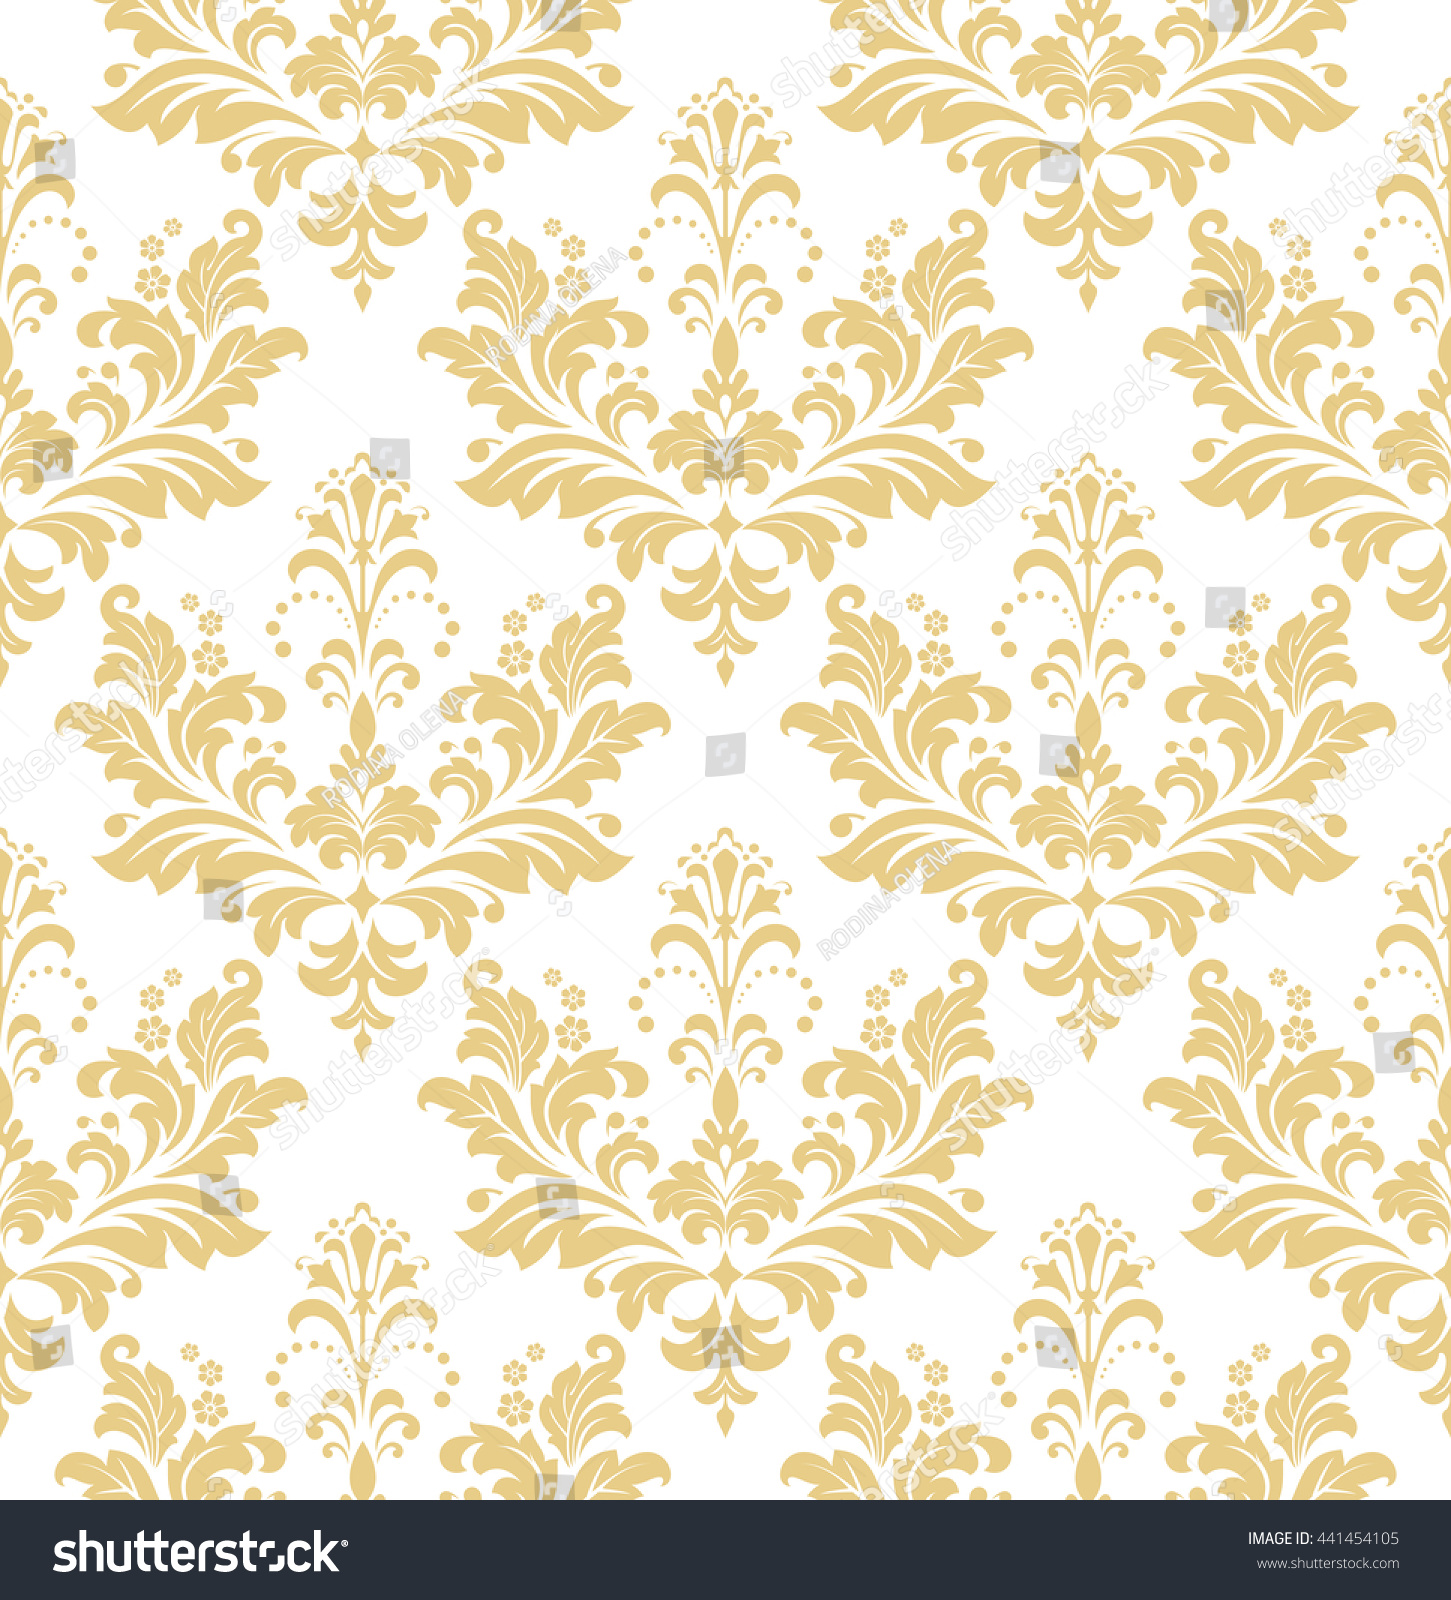 white and gold floral wallpaper - photo #36